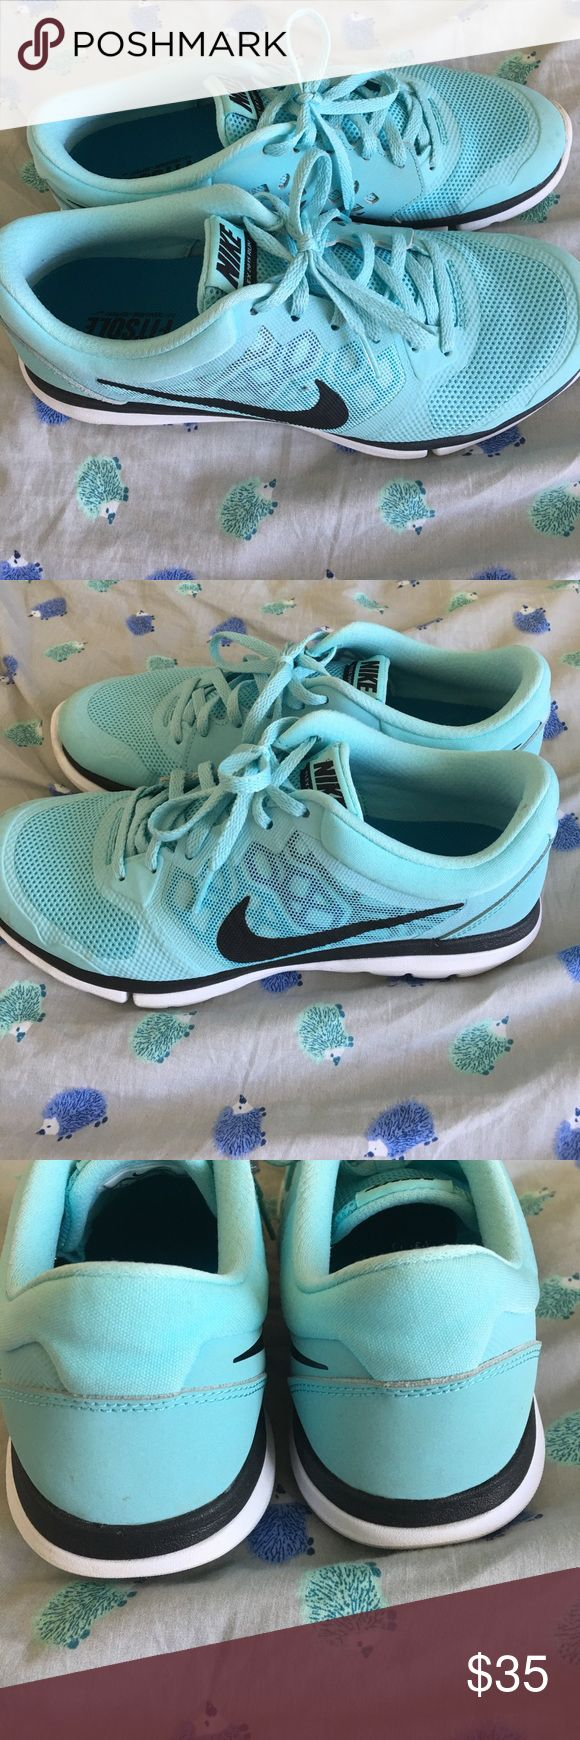 Tiffany Blue Nike Flex Run 9 Tiffany blue Nike Flex run shoes in good condition with a few marks which will definitely come out in the wash. Size 9 women's with fit sole lining. Very comfortable. Nike Shoes Sneakers